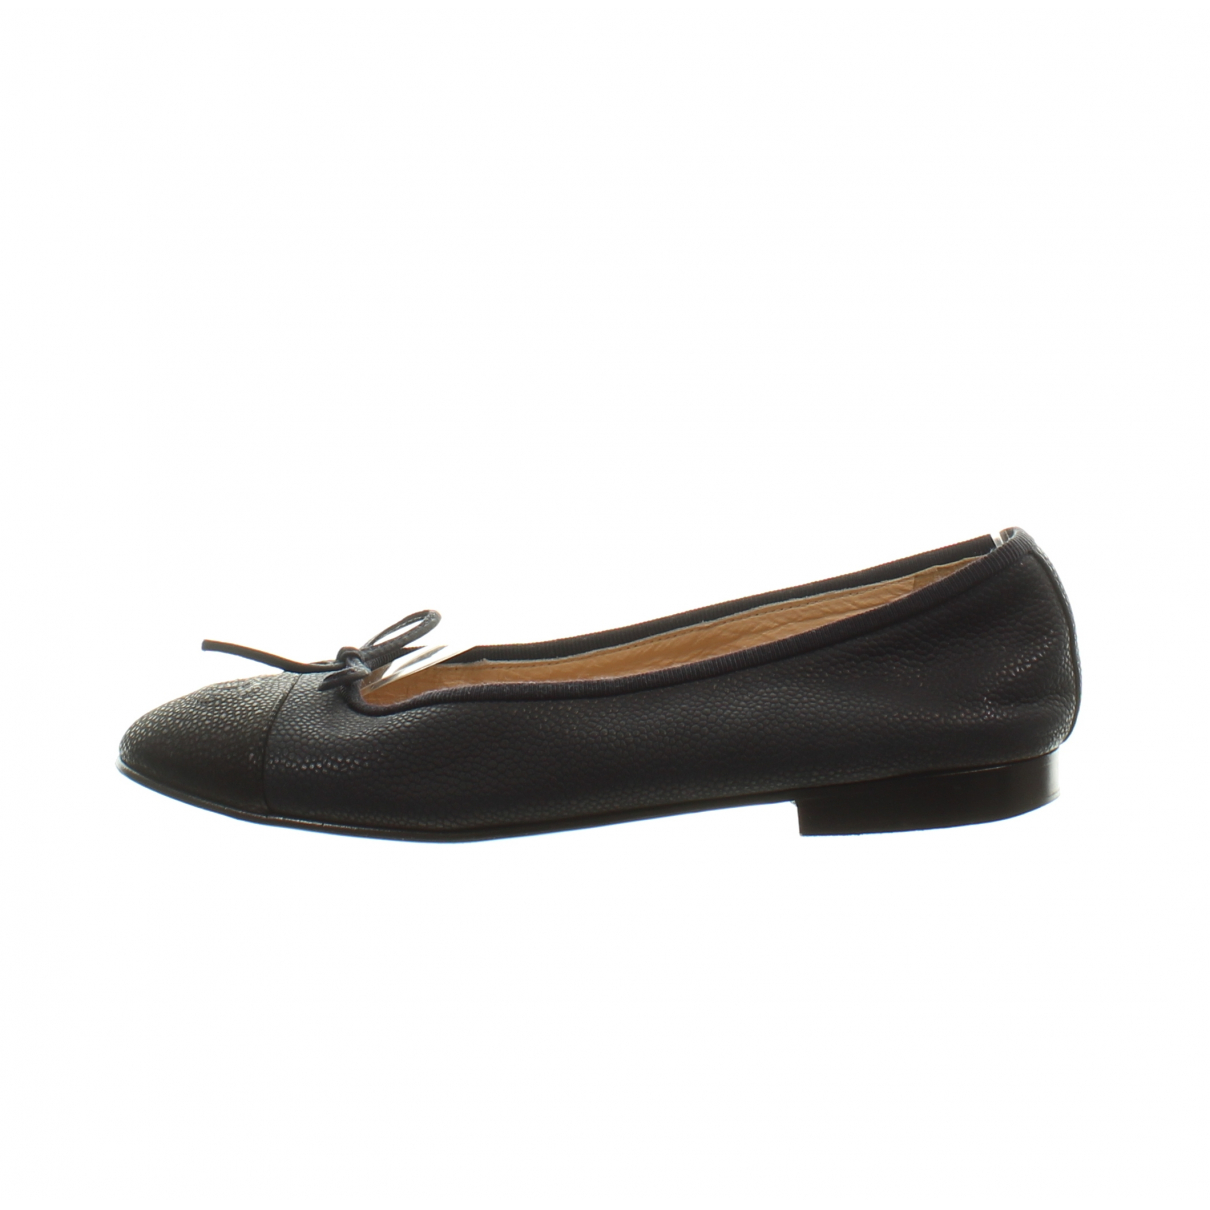 Chanel N Navy Leather Ballet flats for Women 37 EU